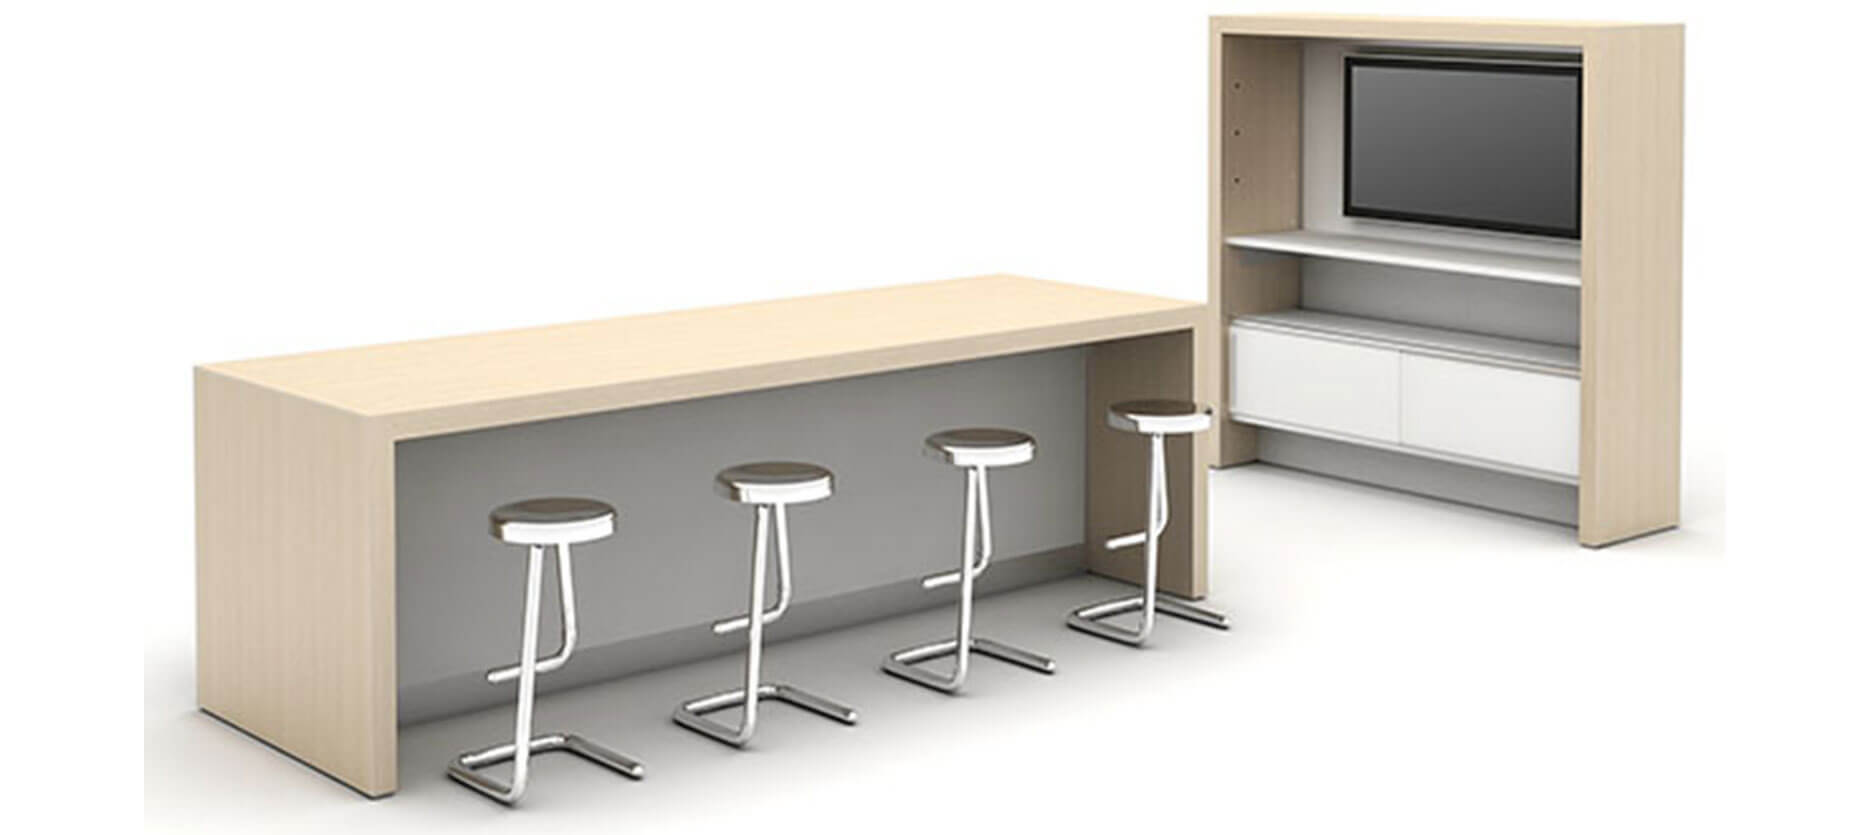 Standing-Height Worksurface